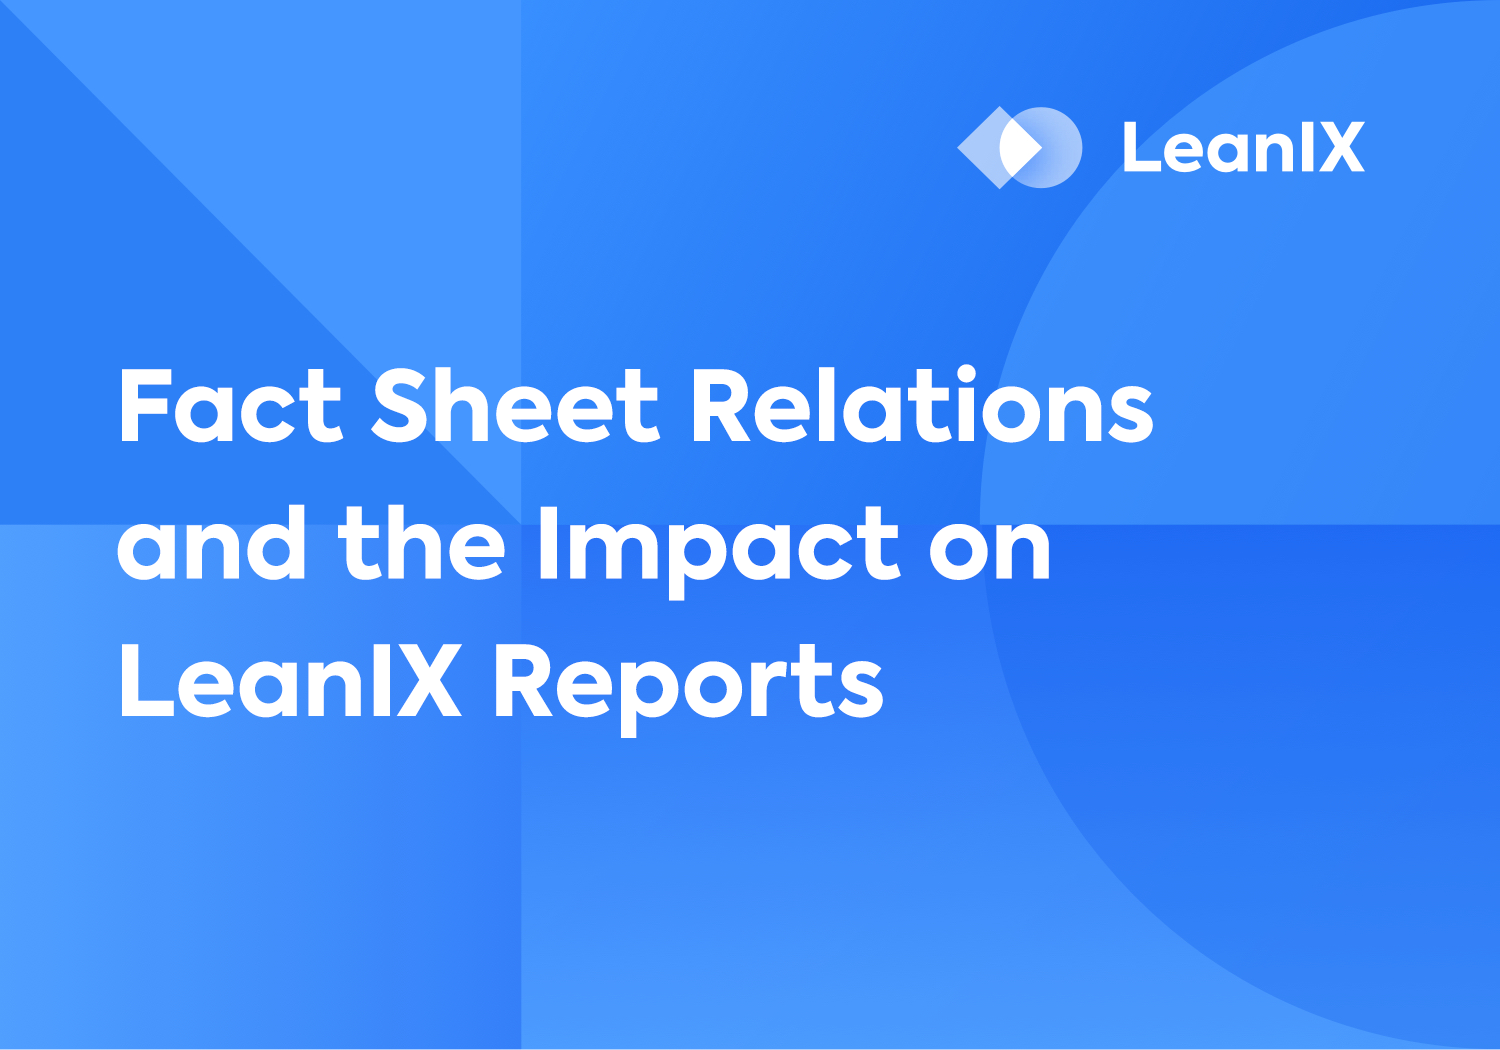 Webinar: Fact Sheet Relations and the Impact on LeanIX Reports